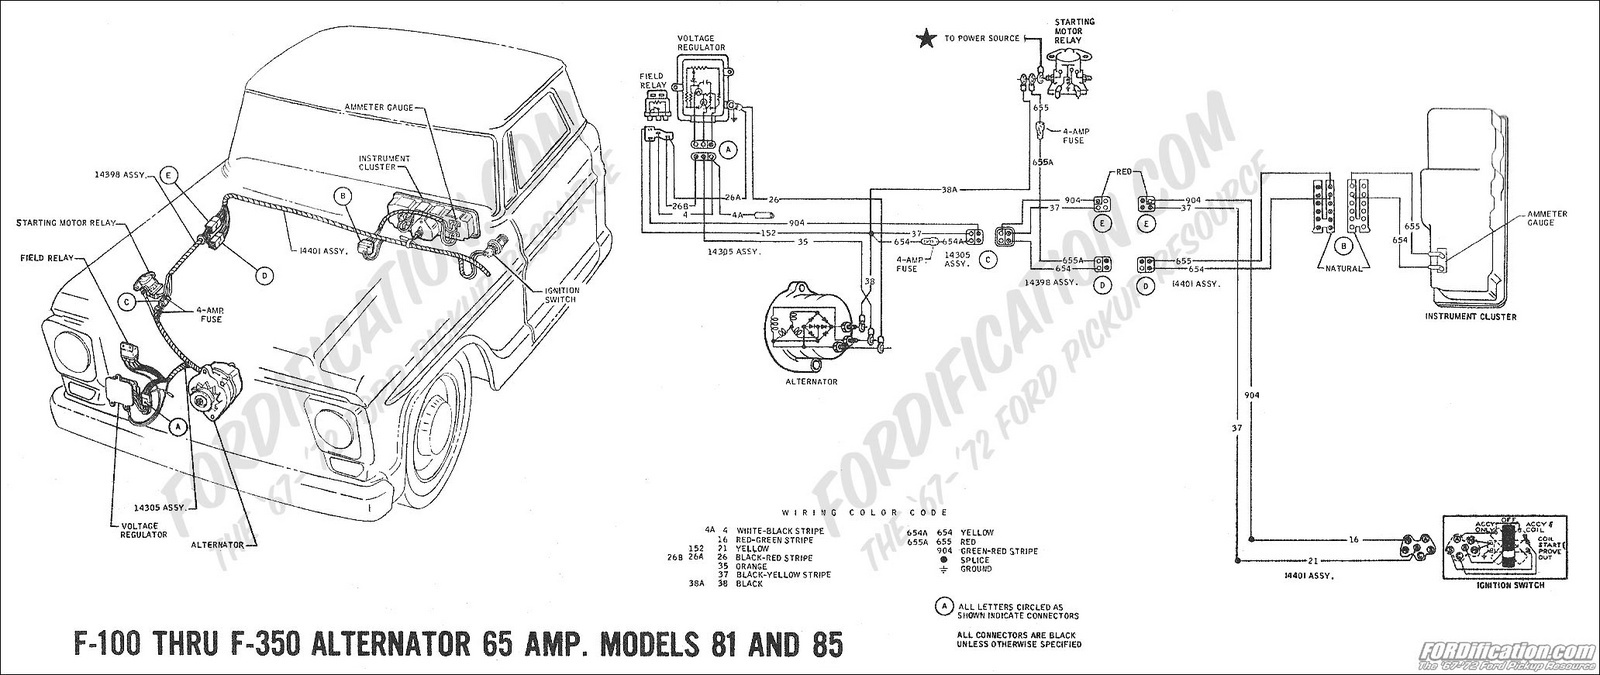 Discussion C13911 ds652668 moreover Library additionally 1qkr3 1988 Ford Owner S Manual Crown Vic I Need Fuse Box Diagram likewise 1999 Ford F350 Fuel Pump Wiring Diagram together with 1989 Ford Truck Fuel Tank Selector Valve Location Wiring Diagrams. on 1986 ford f250 wiring diagram